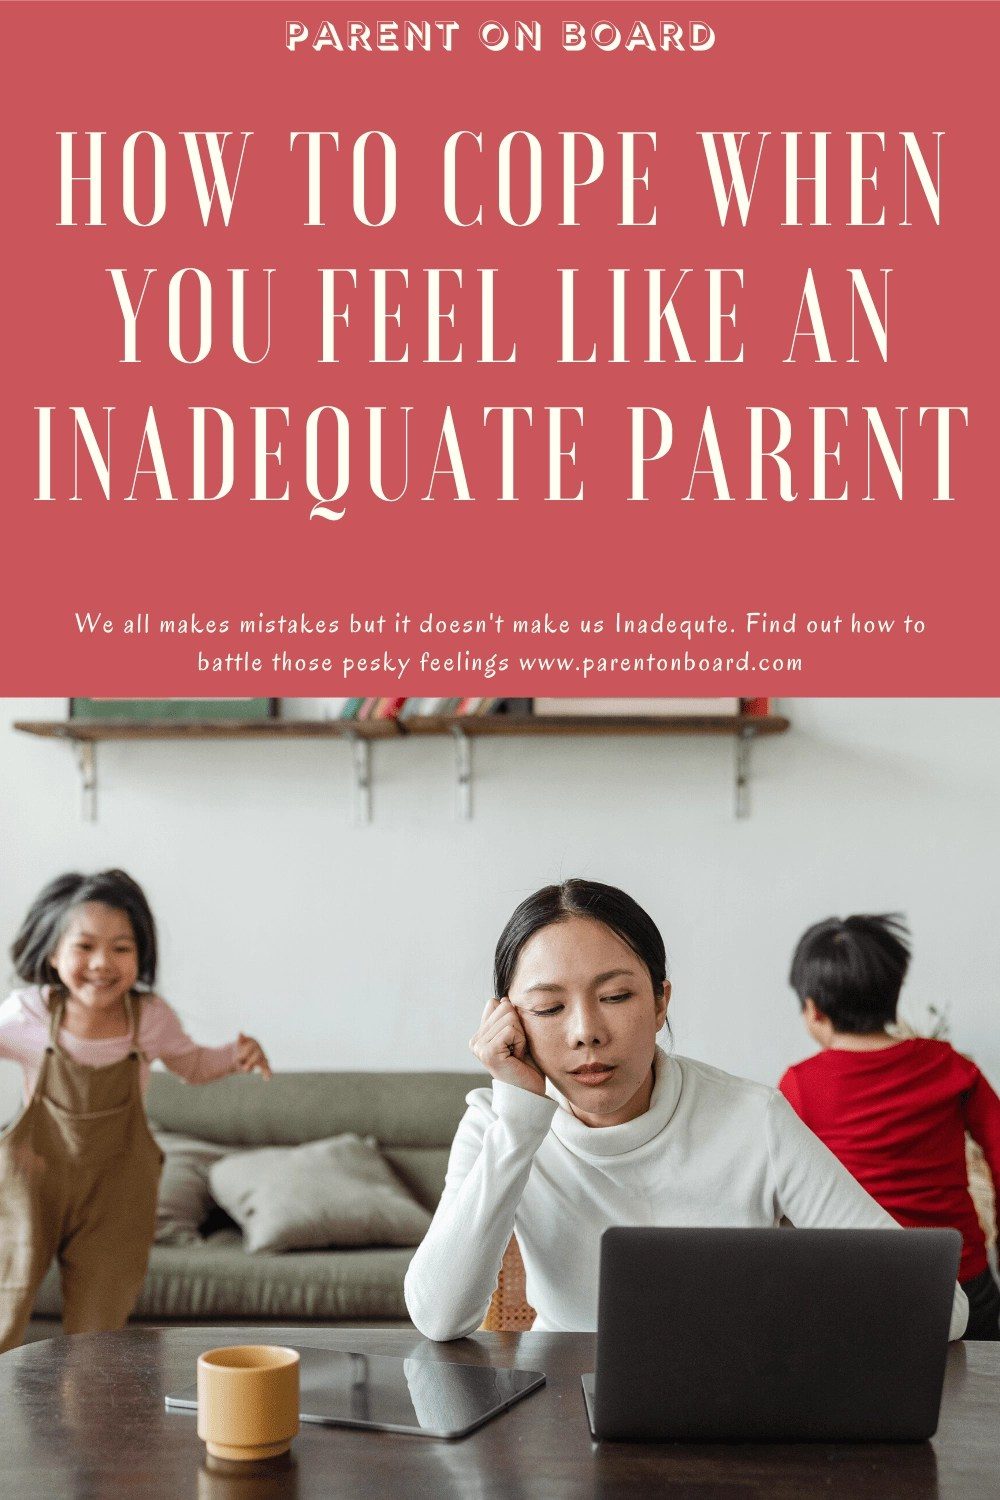 Feeling Like an Inadequate Parent - How to Cope